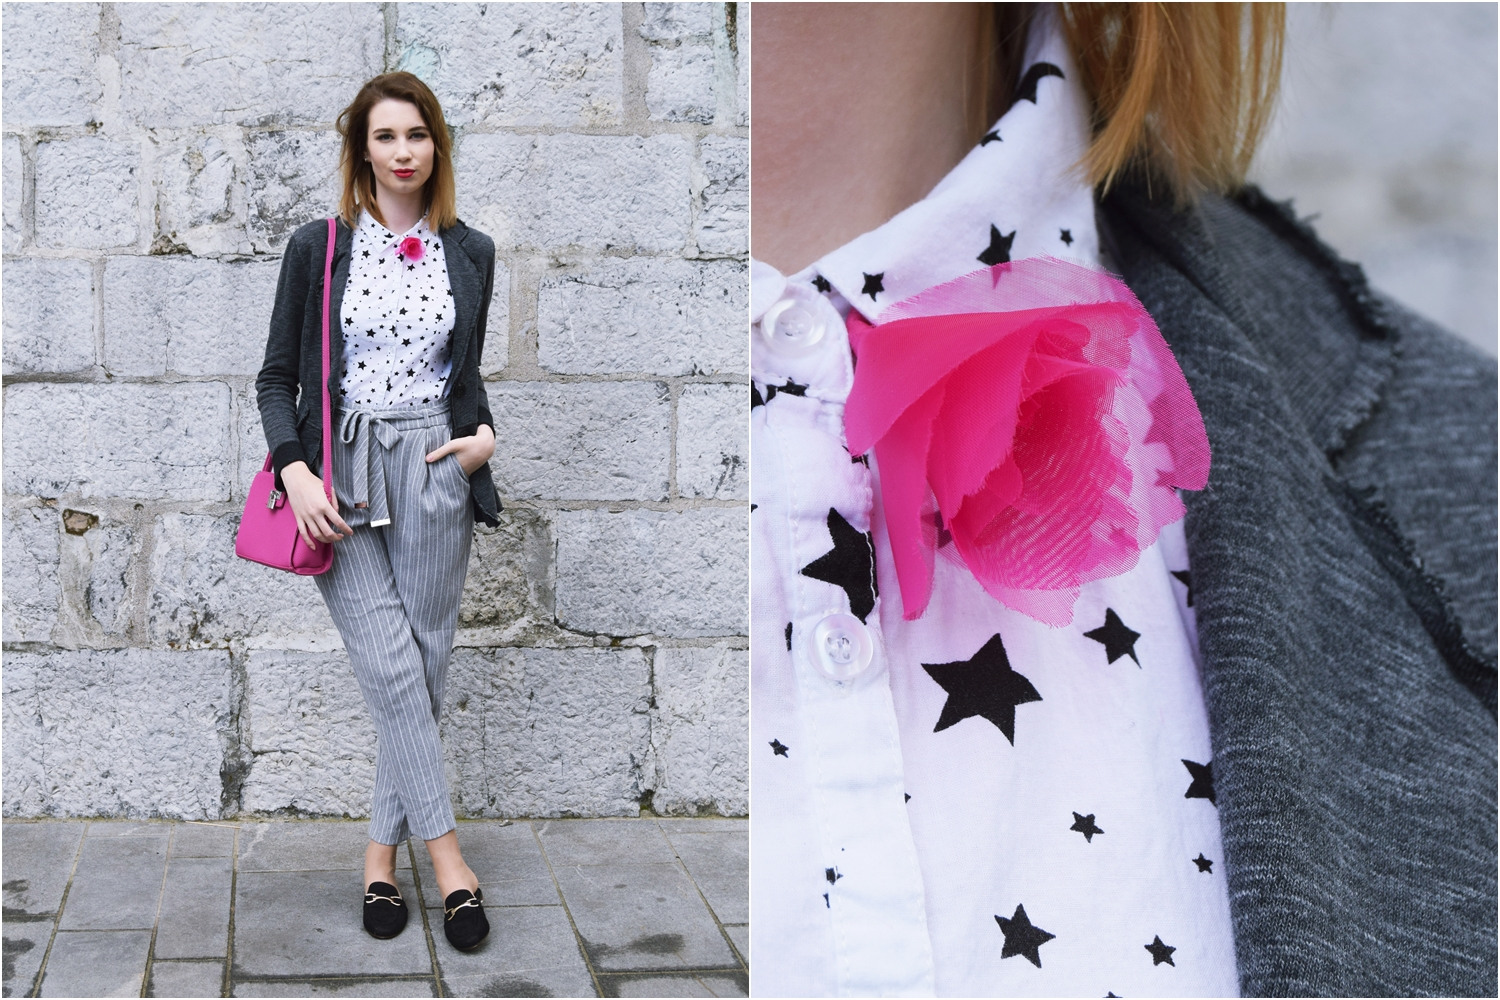 Touch_of_pink_Zalabell_fashion_style_6